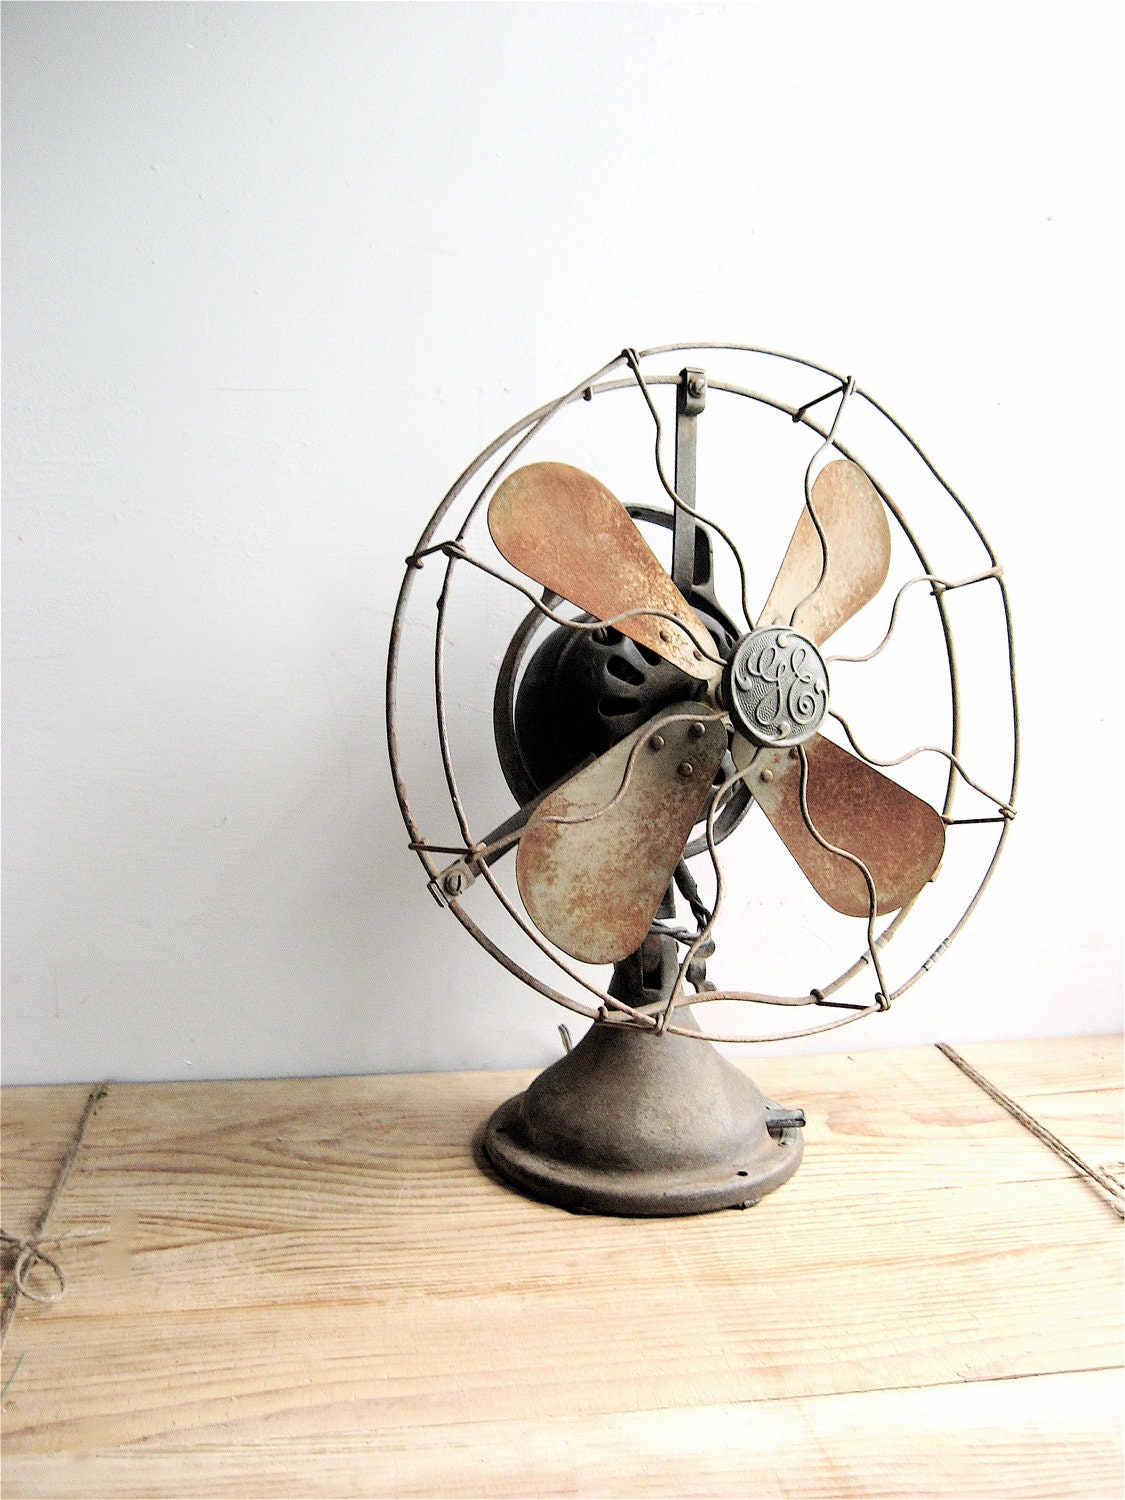 Antique General Electric Fan By Lovintagefinds On Etsy